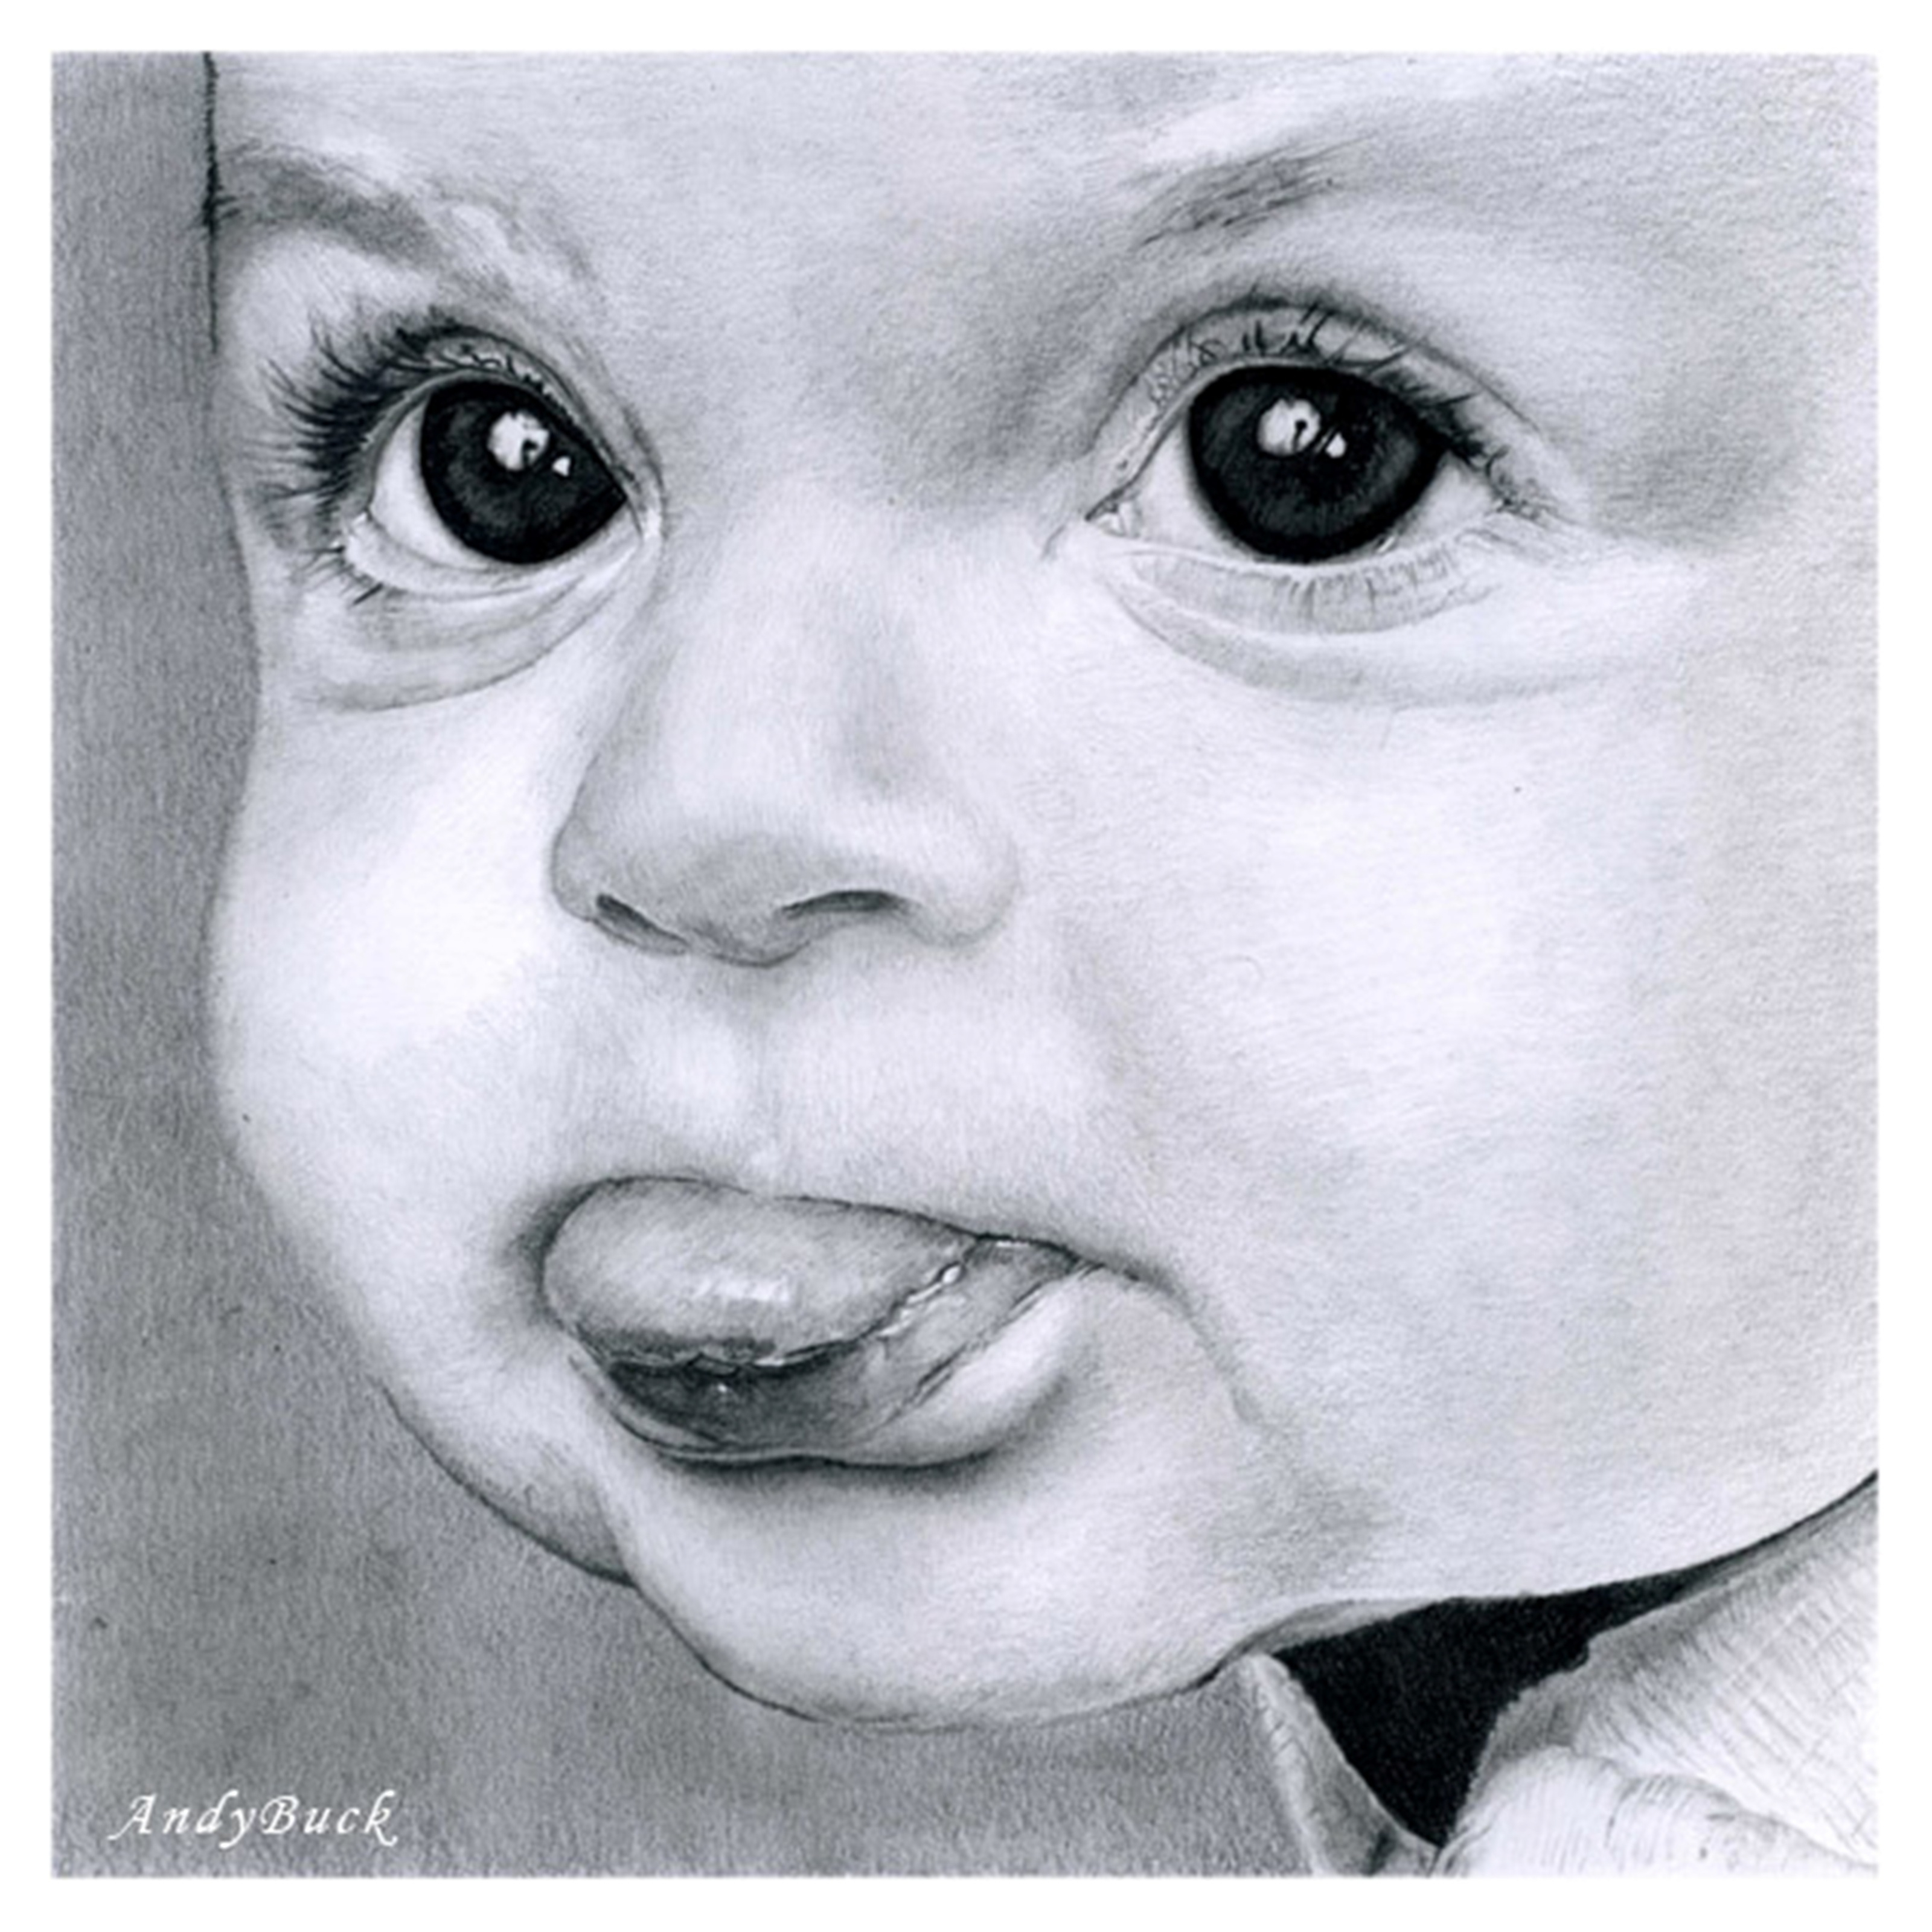 3200x3200 Pencil Drawing Of A Baby Pencil Drawing Baby Faces Pencil Drawings